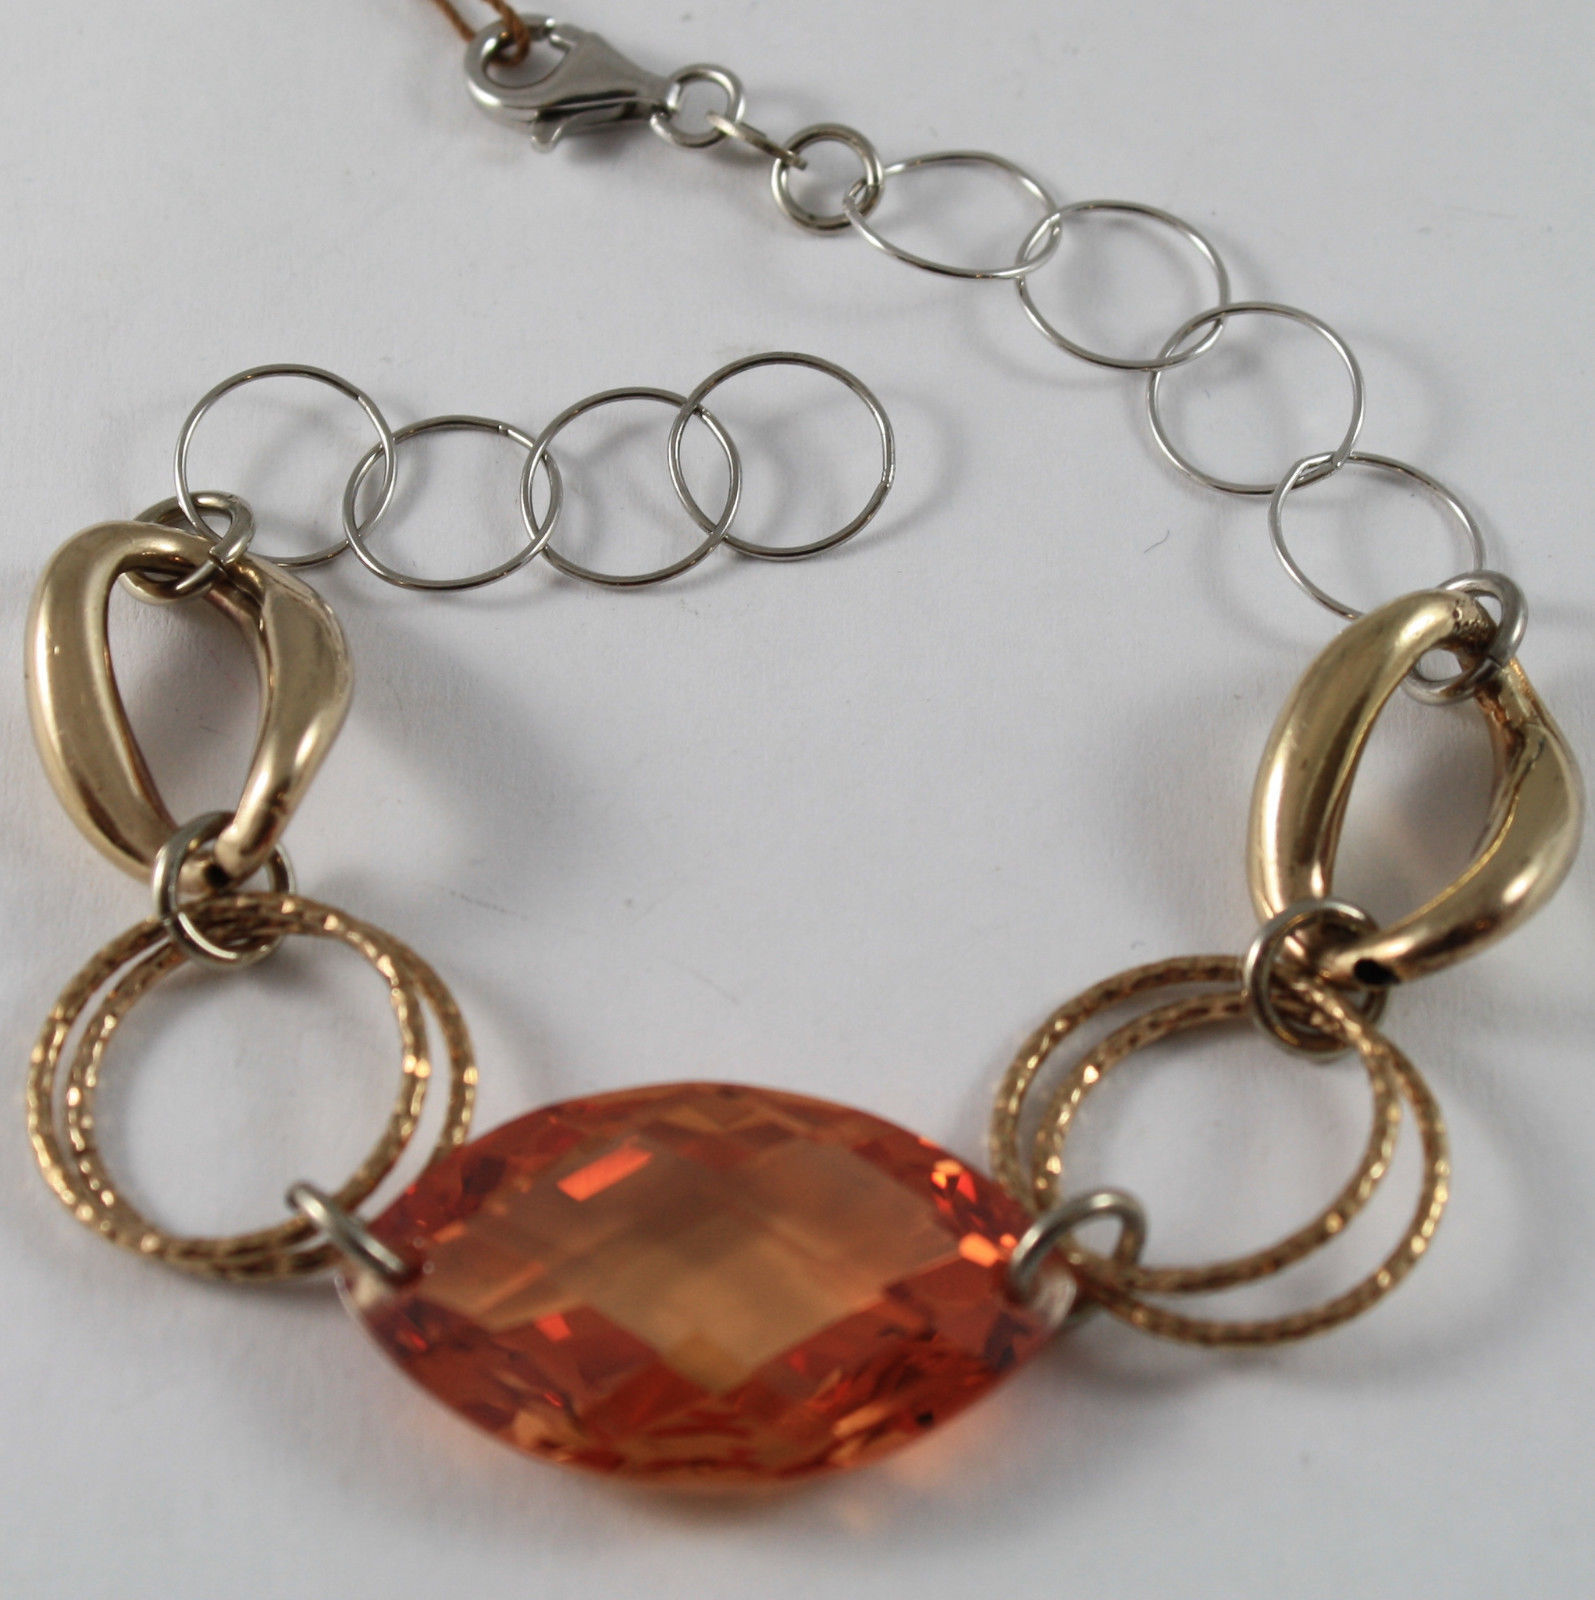 925. RHODIUM WITH PLATED YELLOW GOLD SILVER BRACELET WITH ORANGE CRISTAL